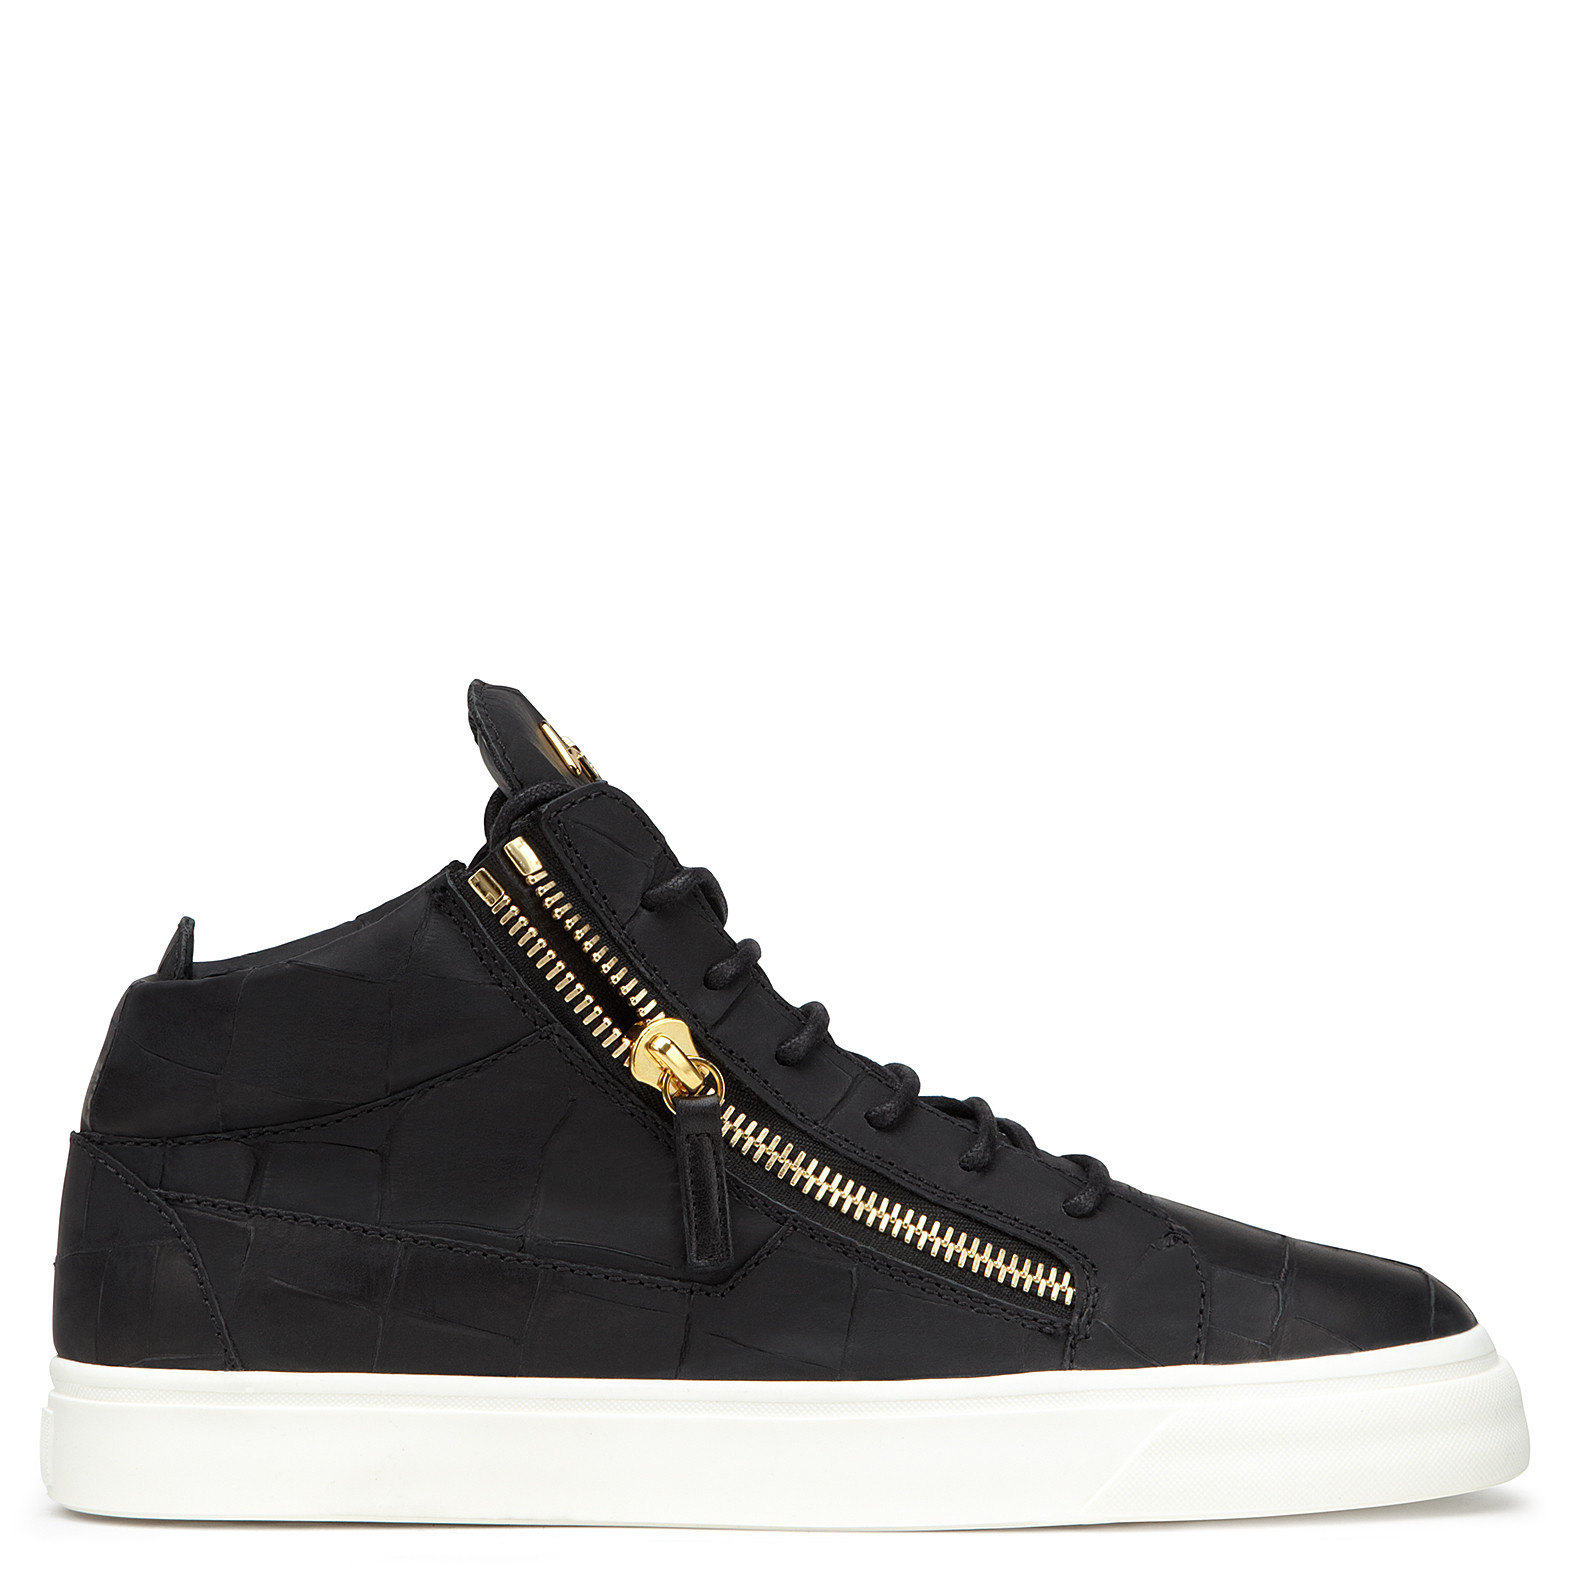 Giuseppe ZanottiCrocodile-embossed leather sneaker DANIEL DCjdJc